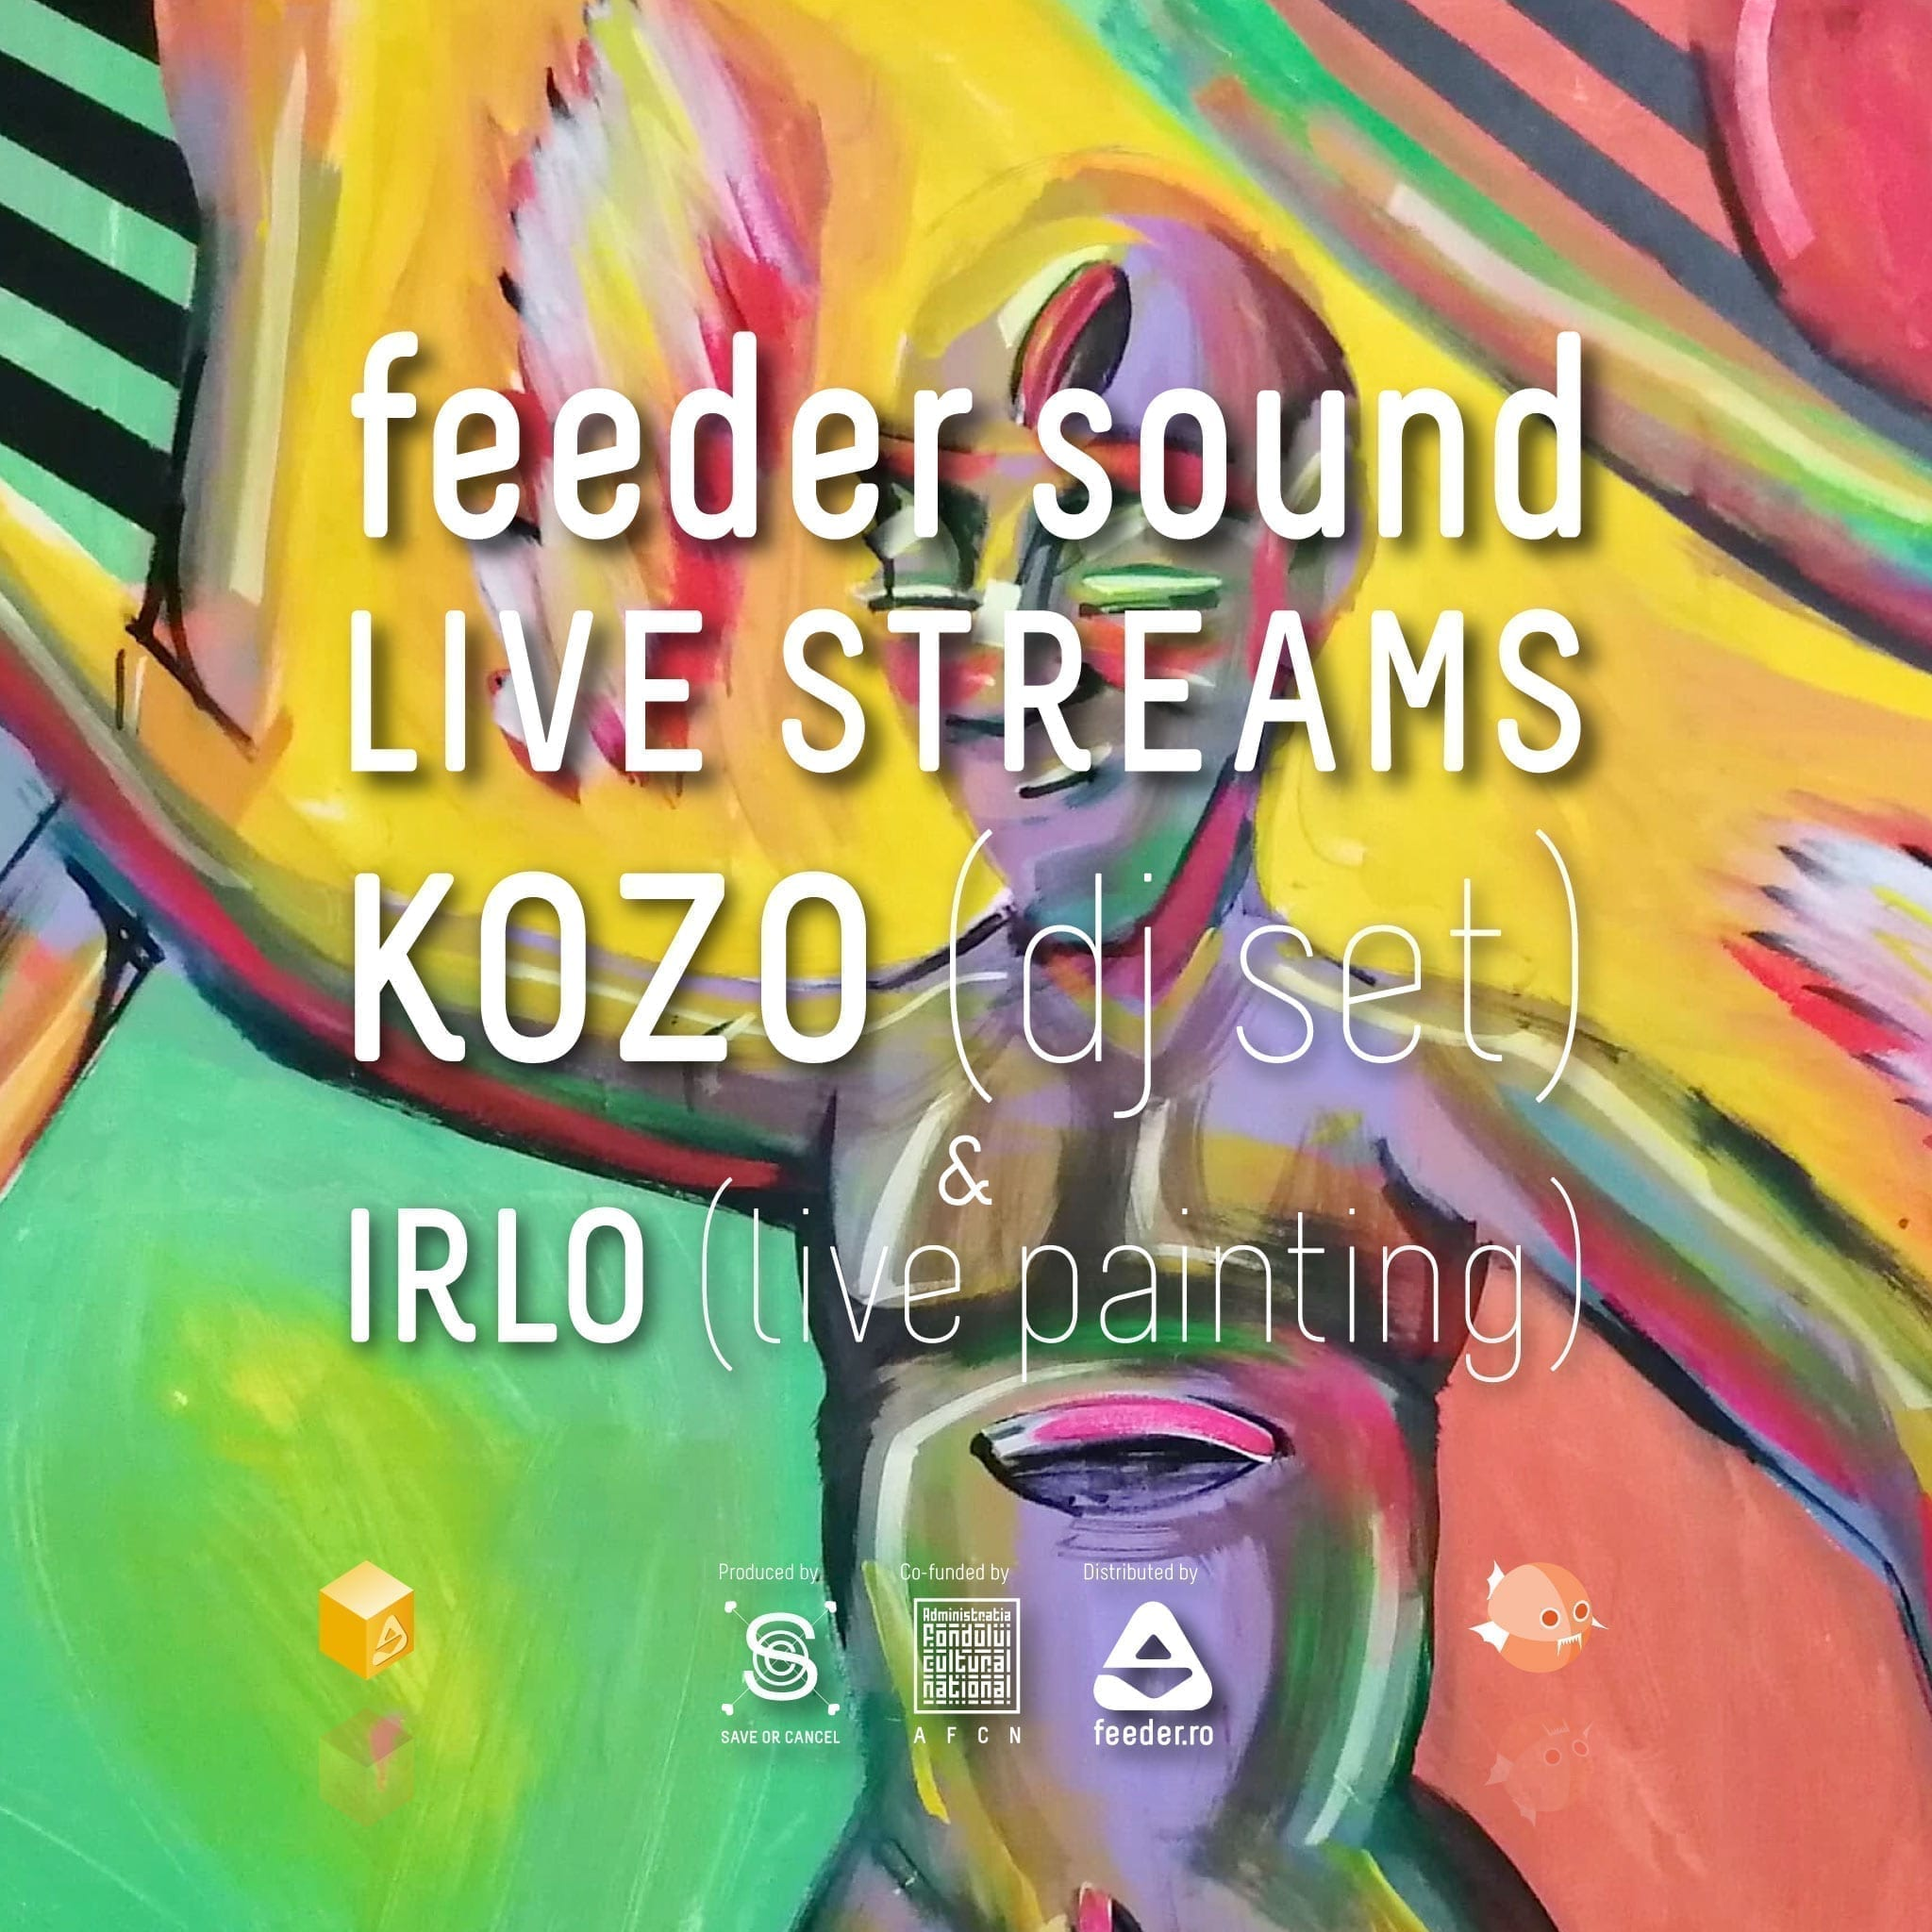 feeder sound LIVE STREAMS with KOZO (dj set) & IRLO (live painting)